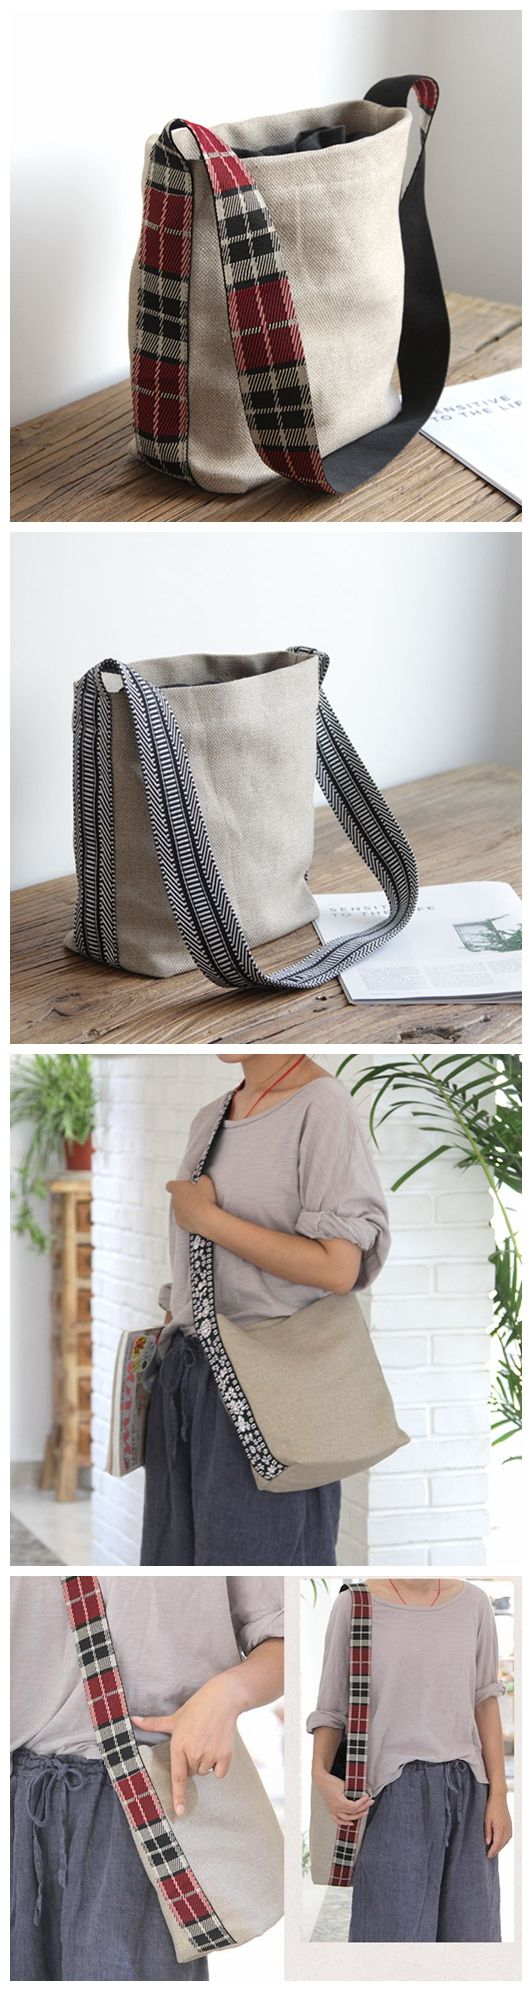 Canvas Crossbody Bag, Handmade Bag, Bridesmaid Gift, Casual Daily Canvas Bag, Vintage Bag, Popular Bag, YY022